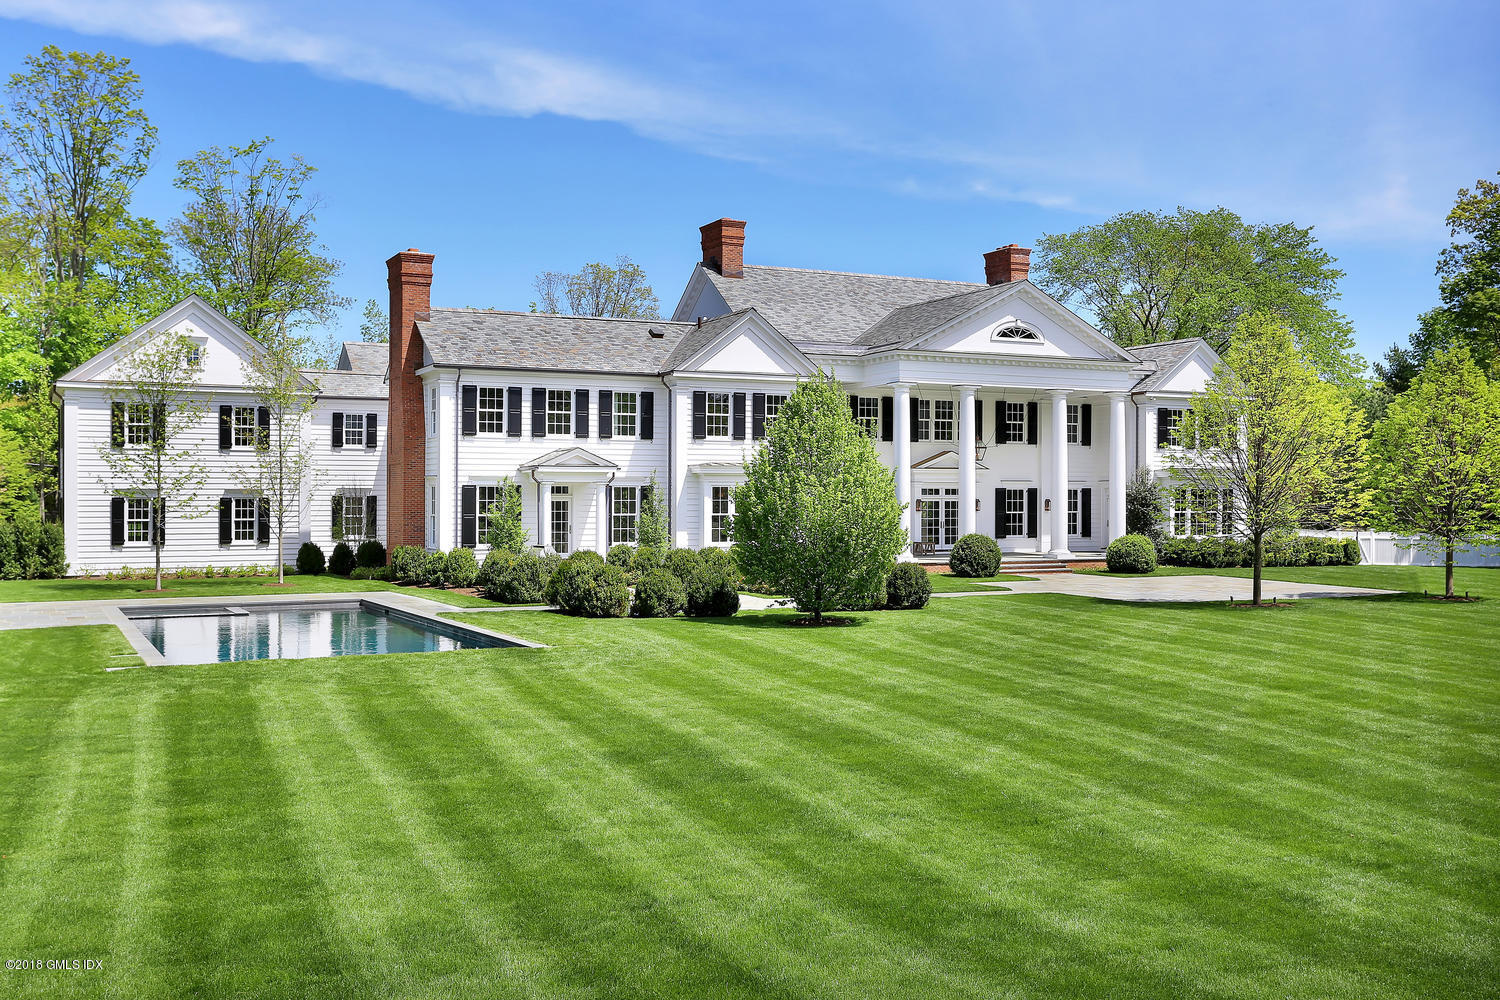 272 Round Hill Road,Greenwich,Connecticut 06831,7 Bedrooms Bedrooms,7 BathroomsBathrooms,Single family,Round Hill,103889